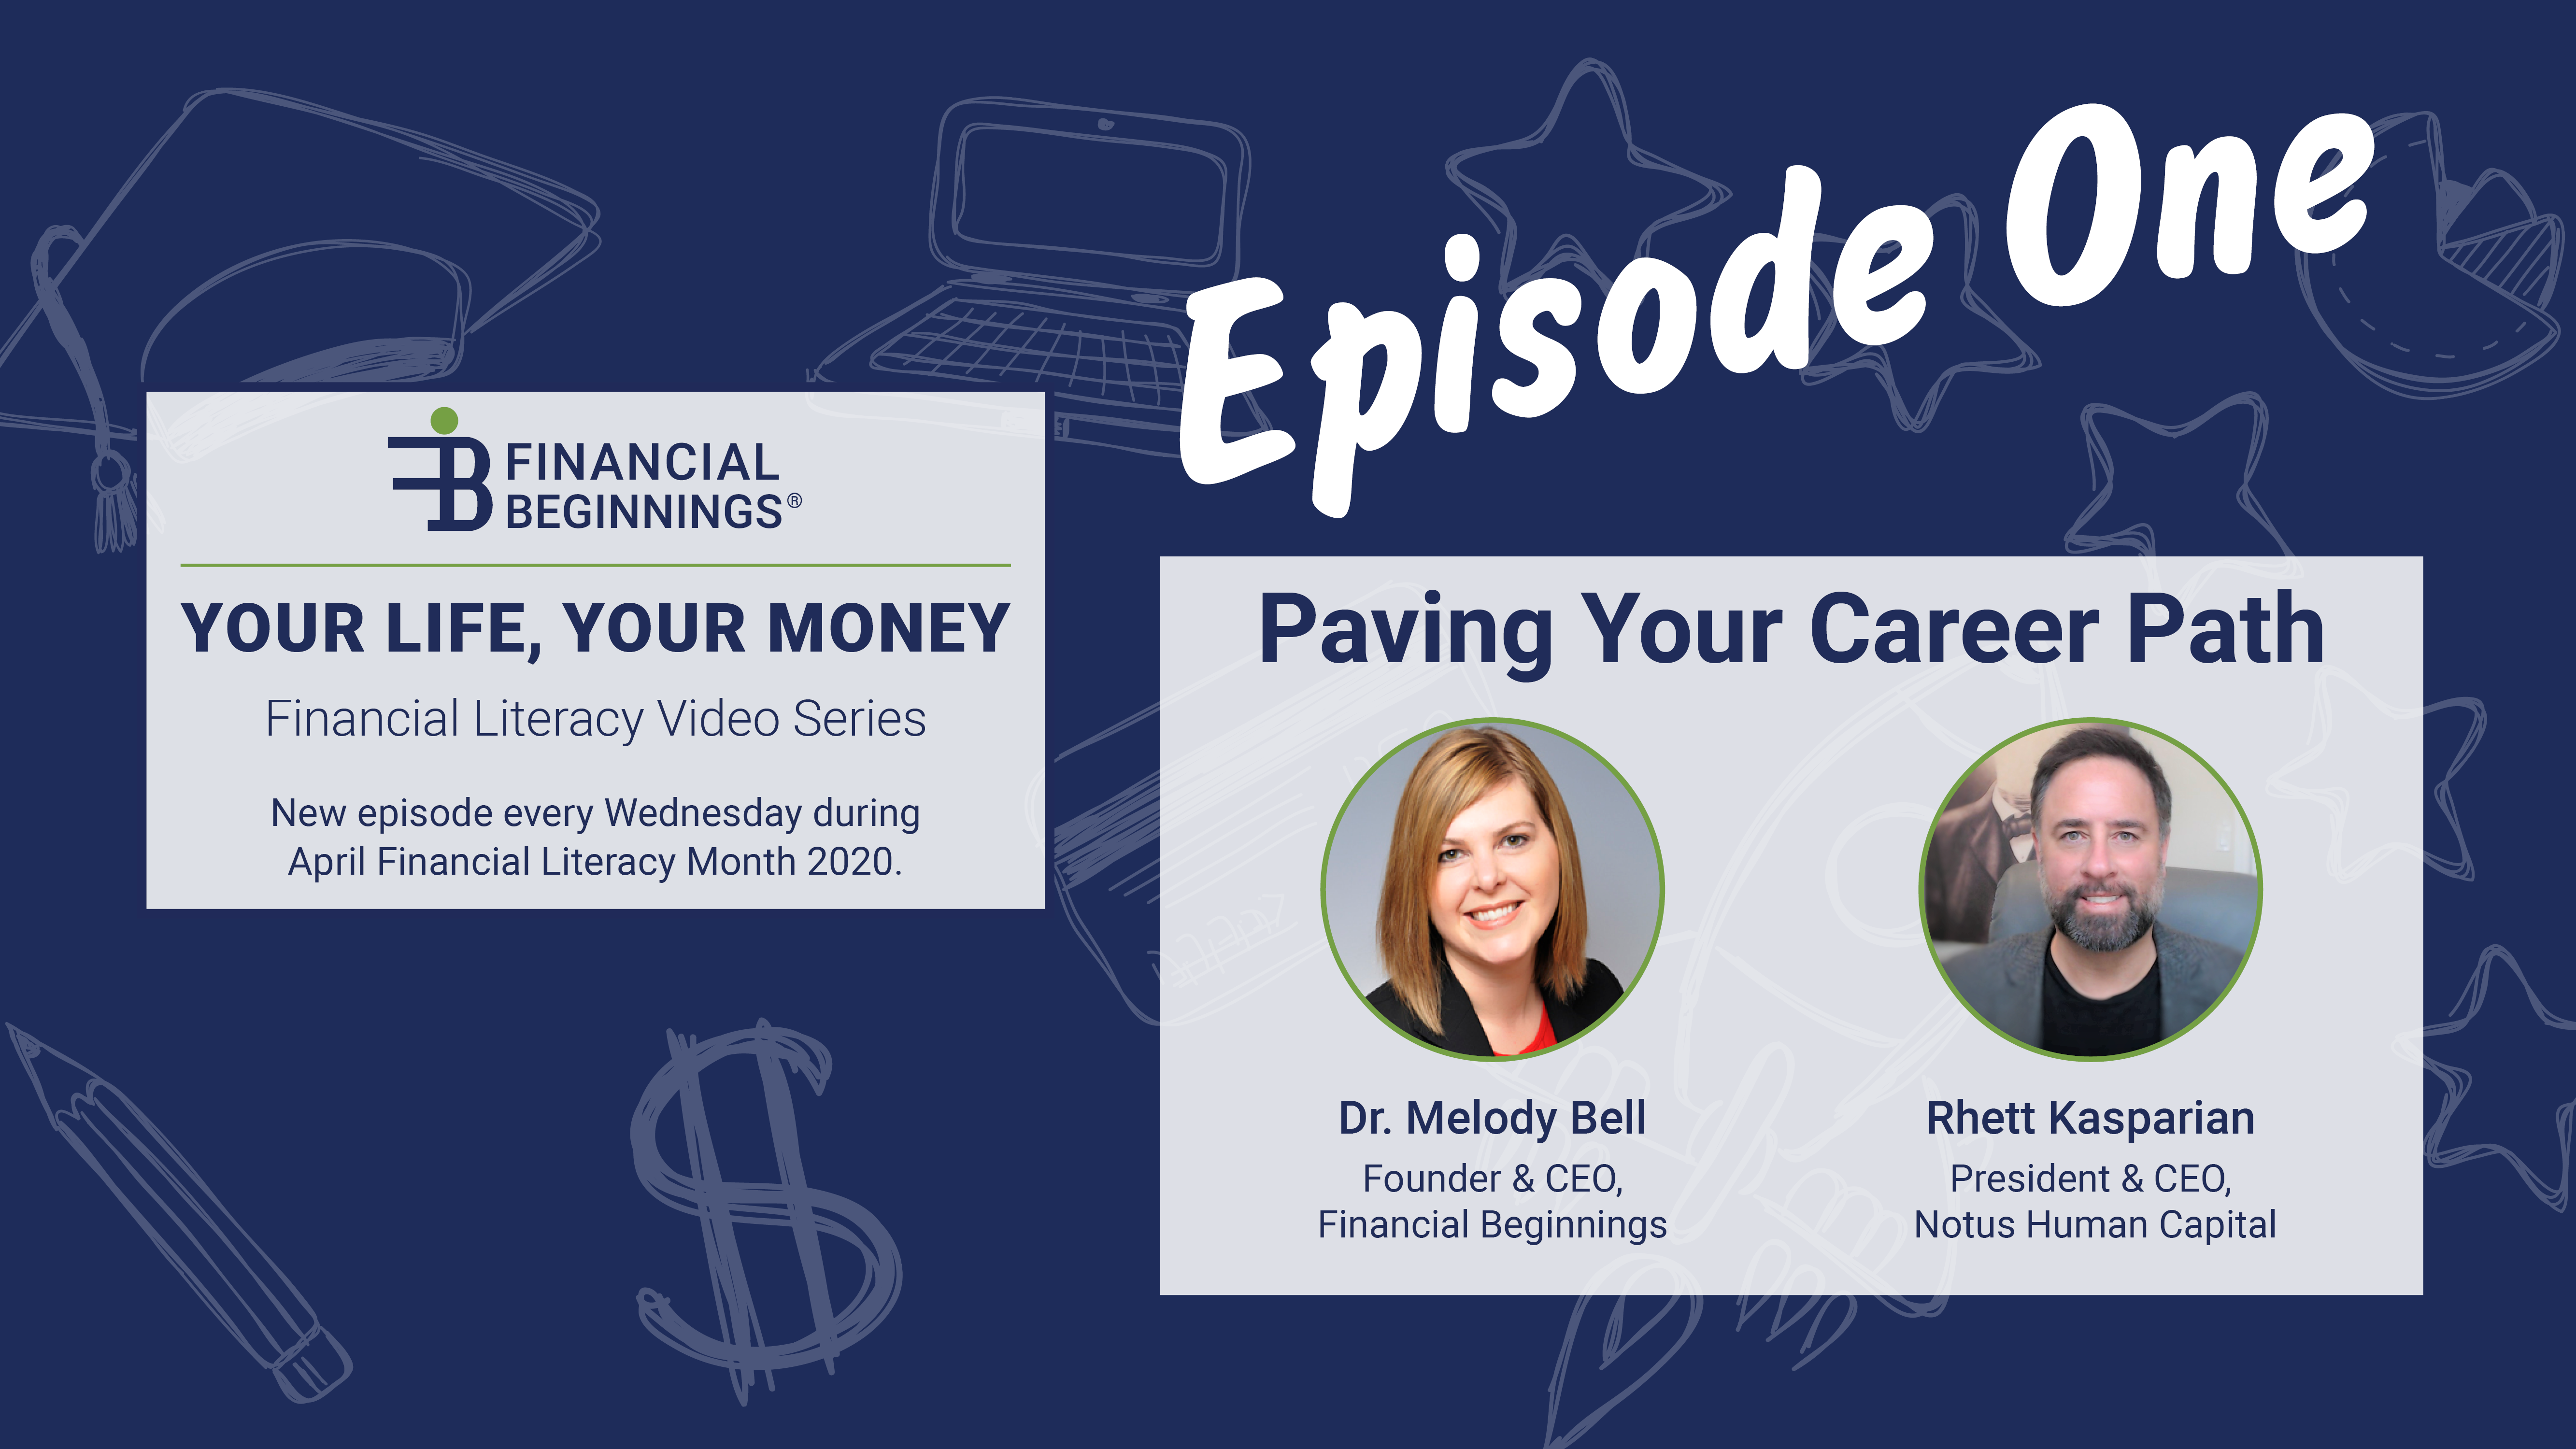 Episode 1: Paving Your Career Path